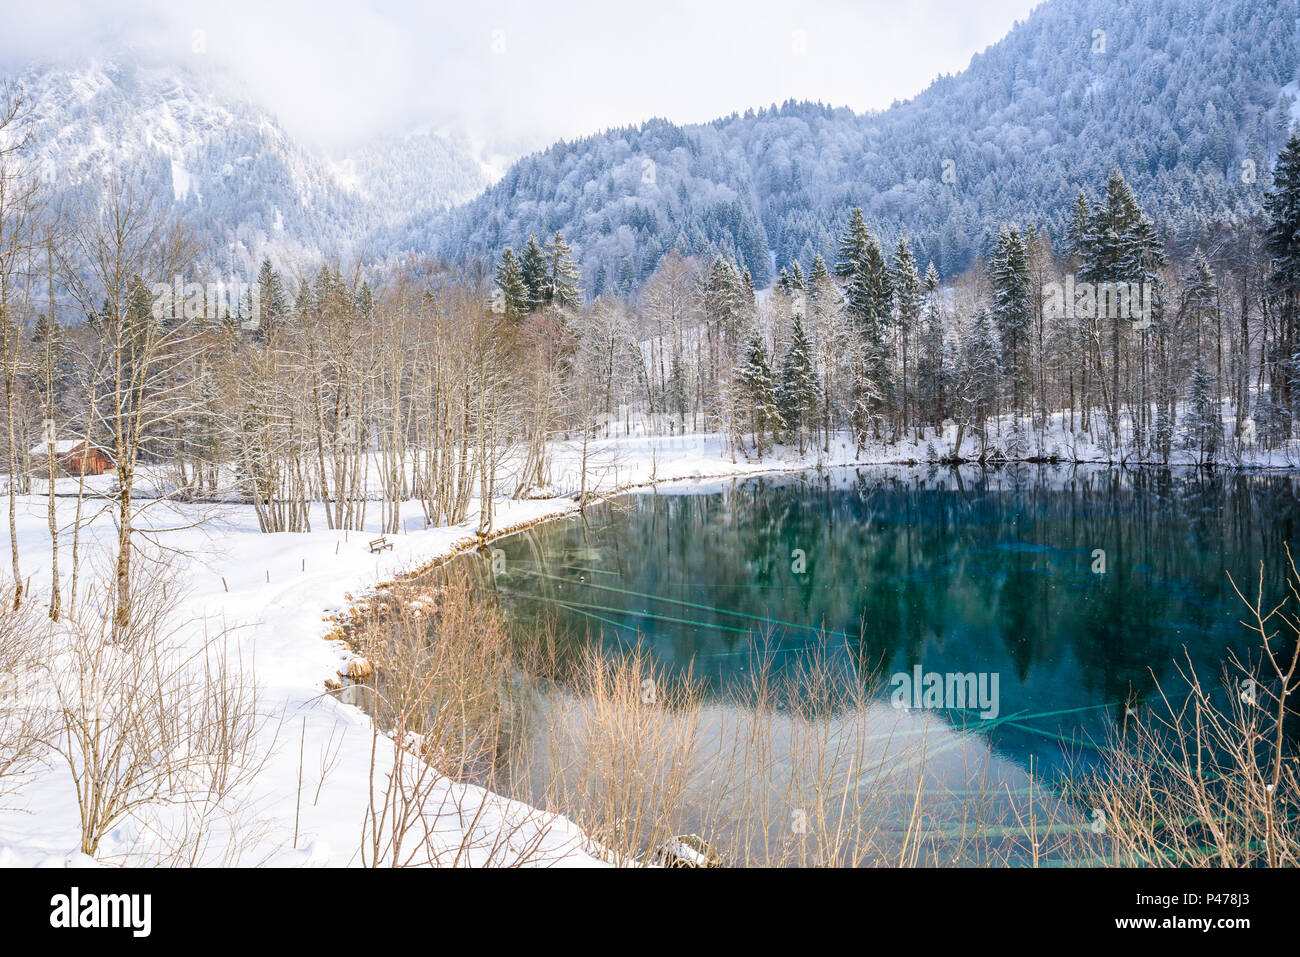 Lake Christlessee in winter at trettach valley near oberstdorf, idyllic south bavarian landscape in Germany - Stock Image